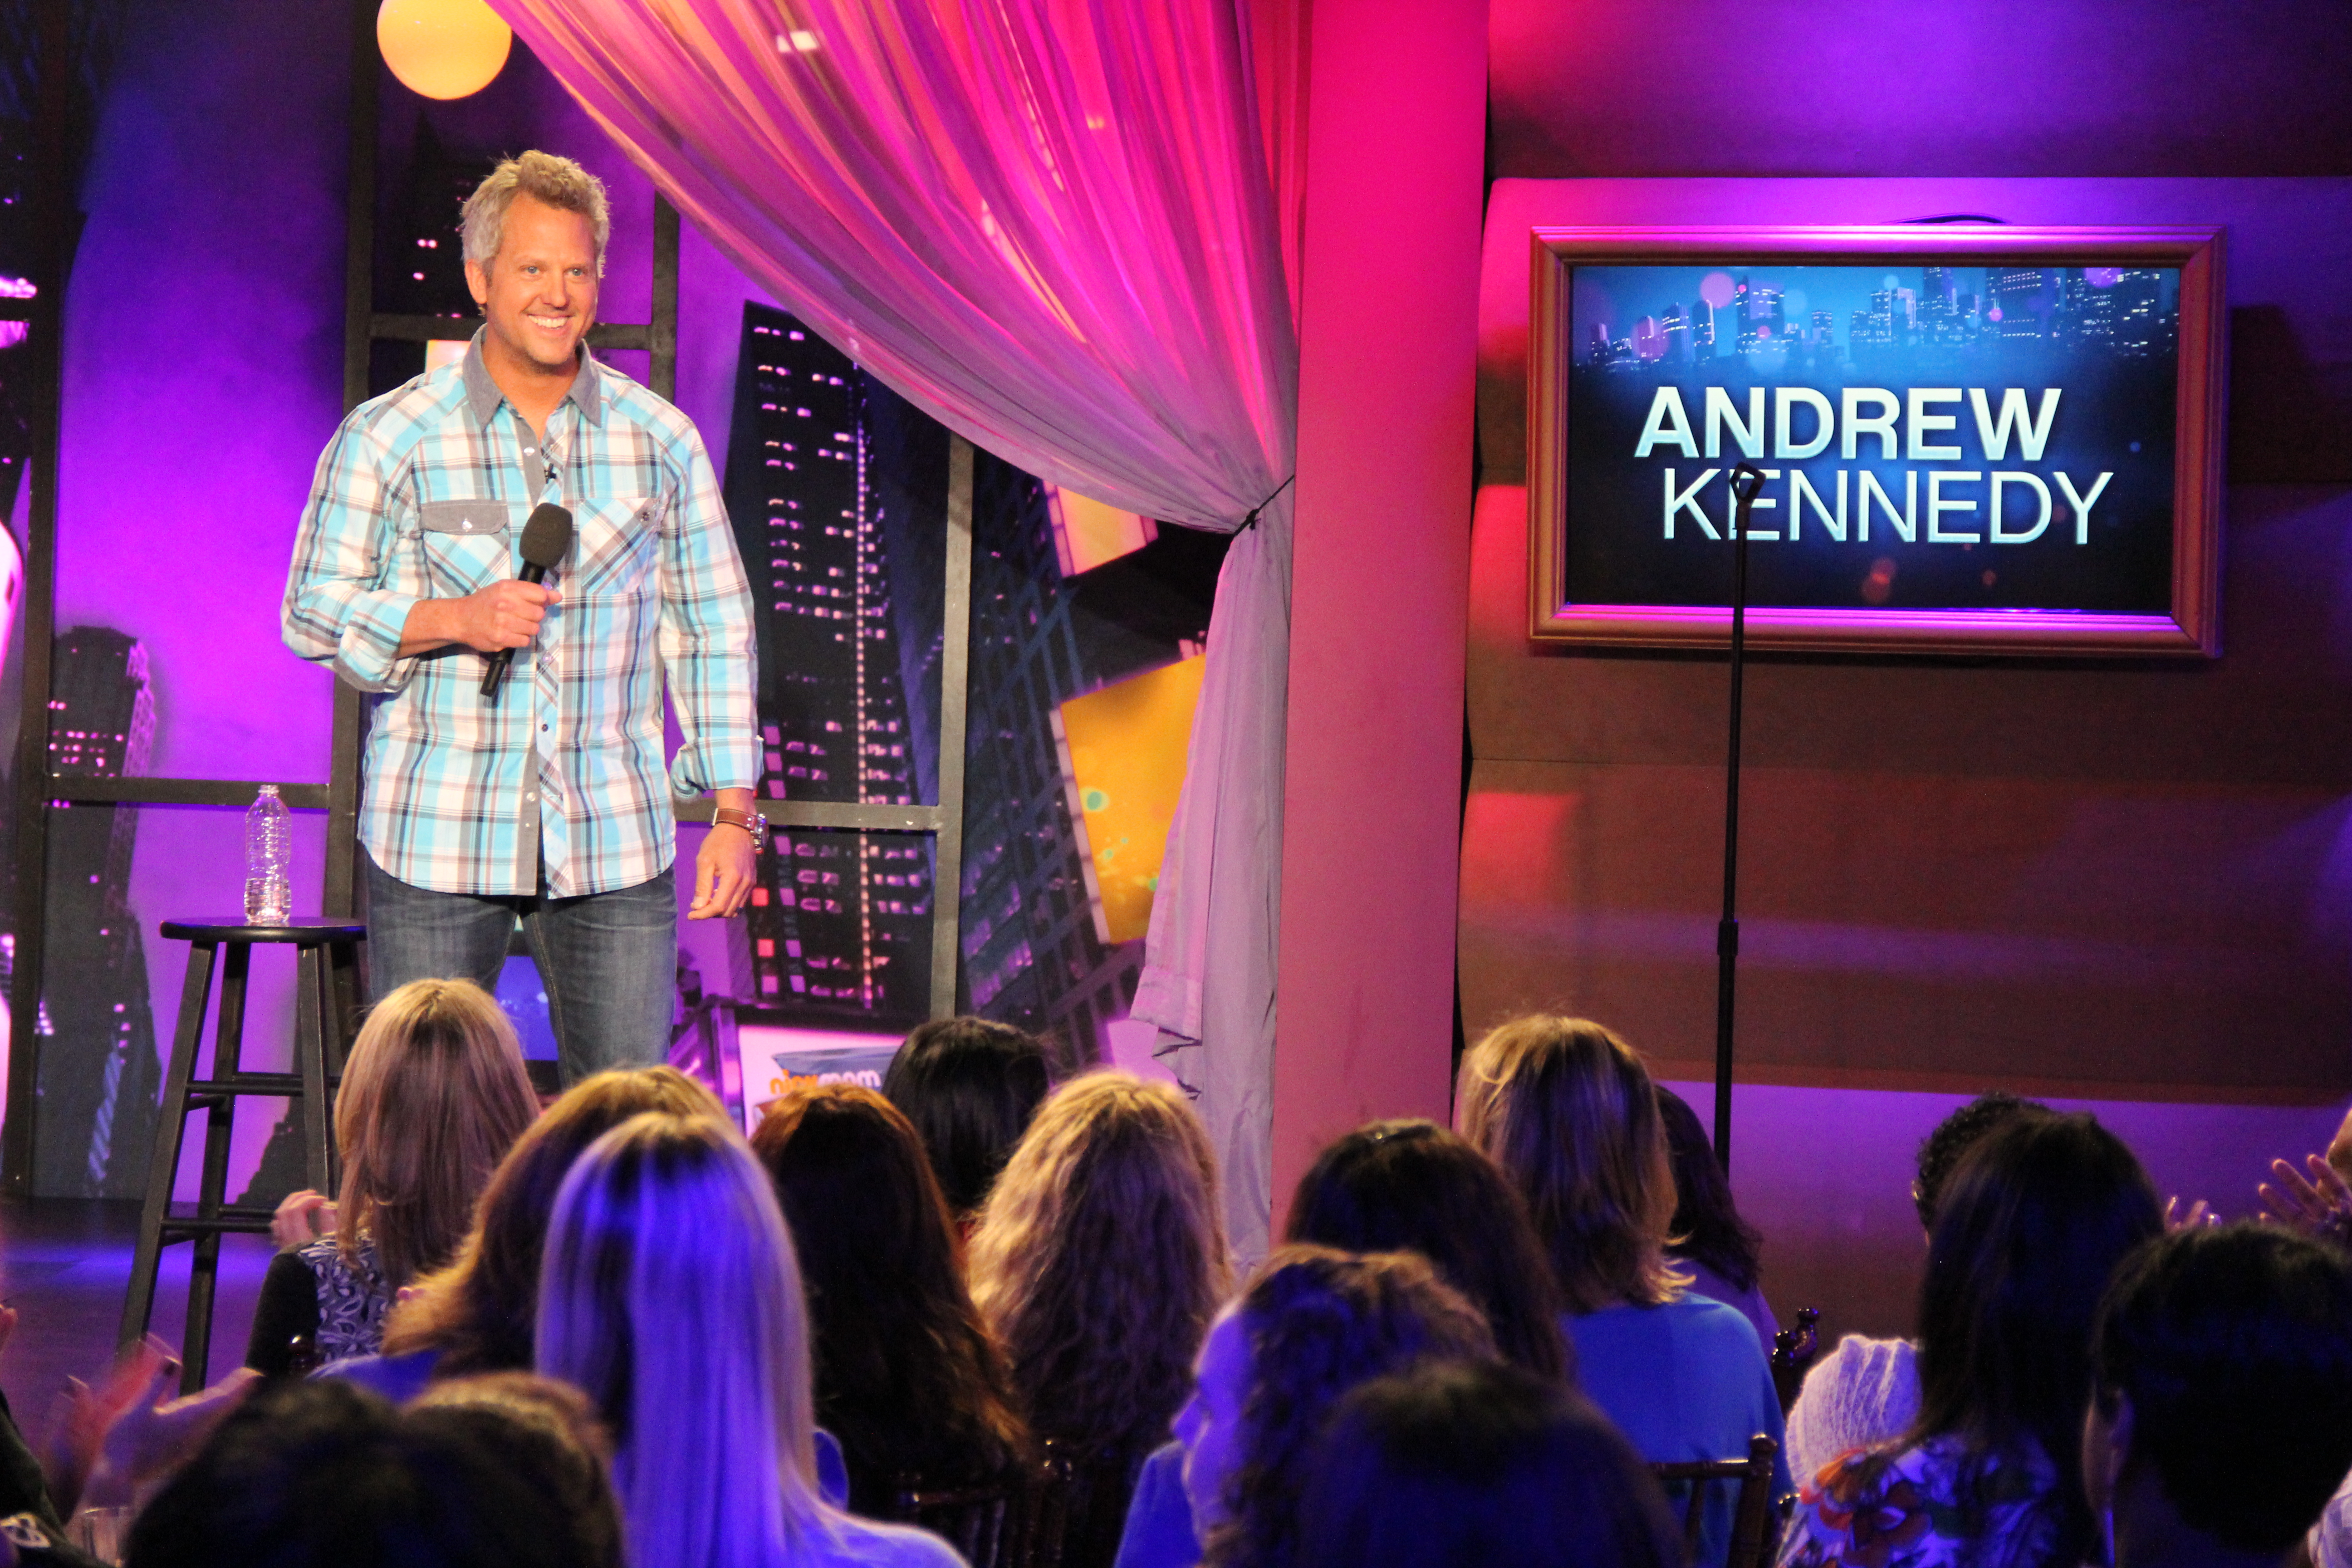 Andrew Kennedy